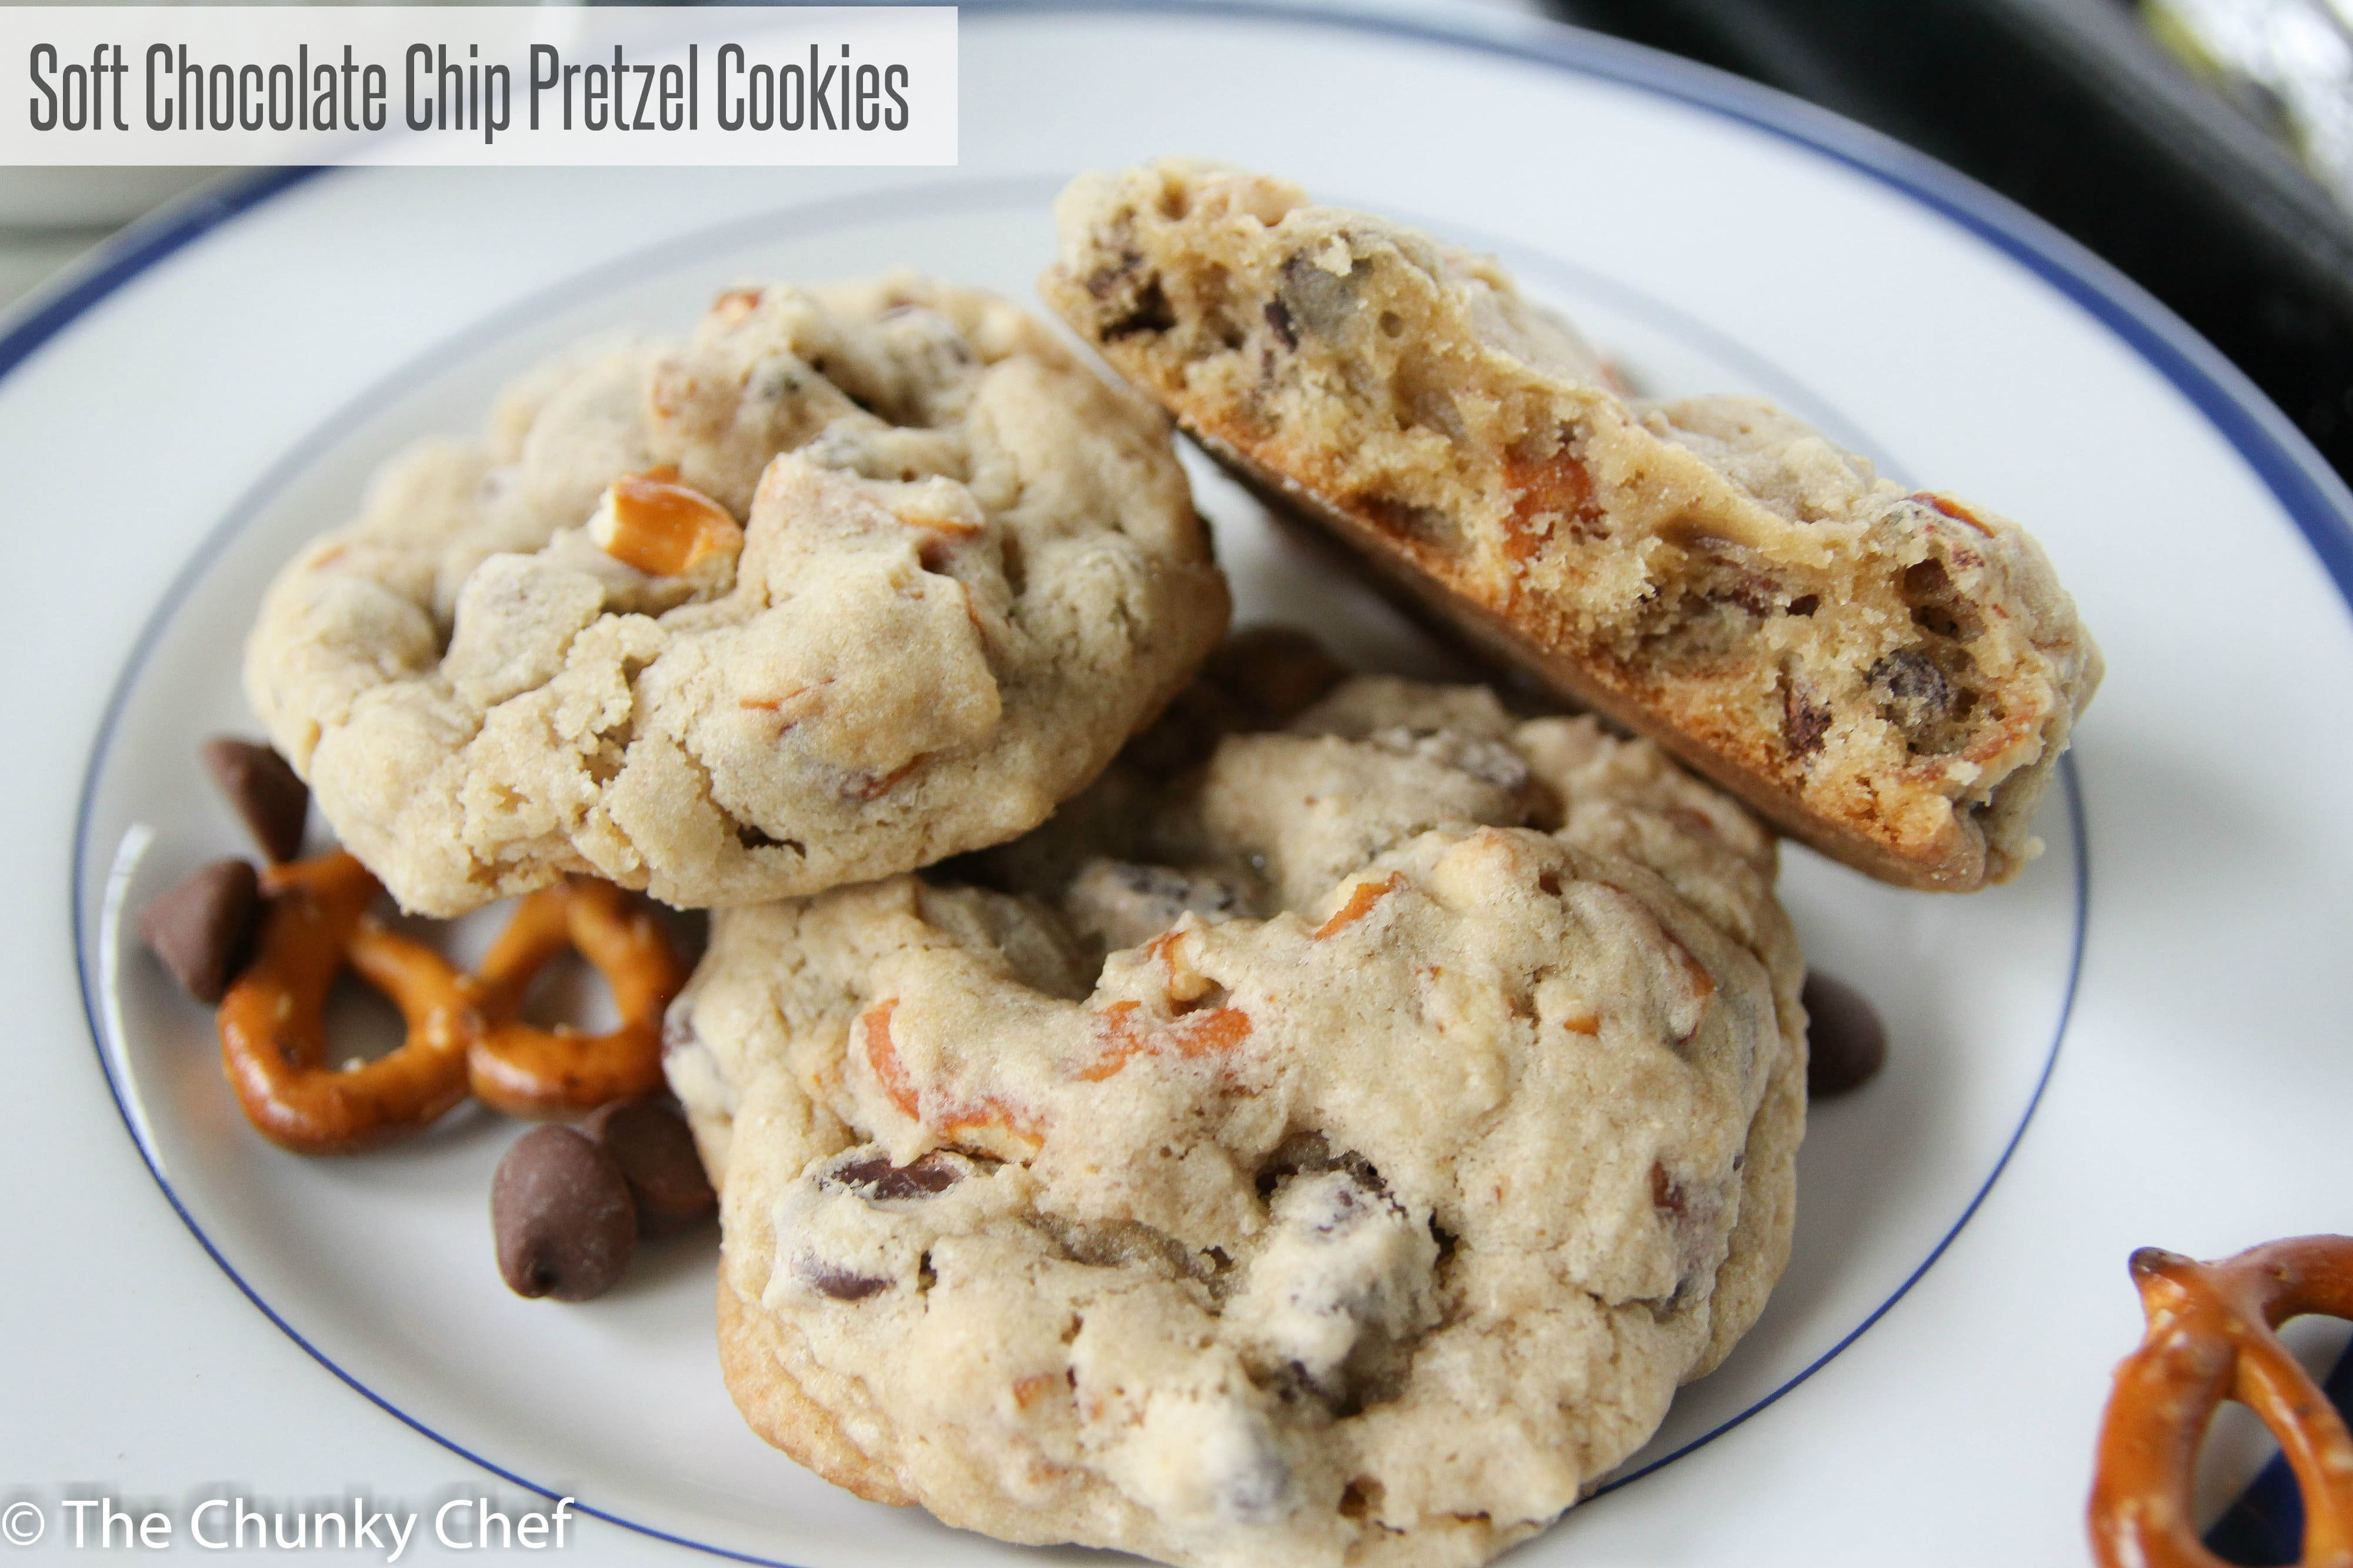 Soft Chocolate Chip Pretzel Cookies - The Chunky Chef